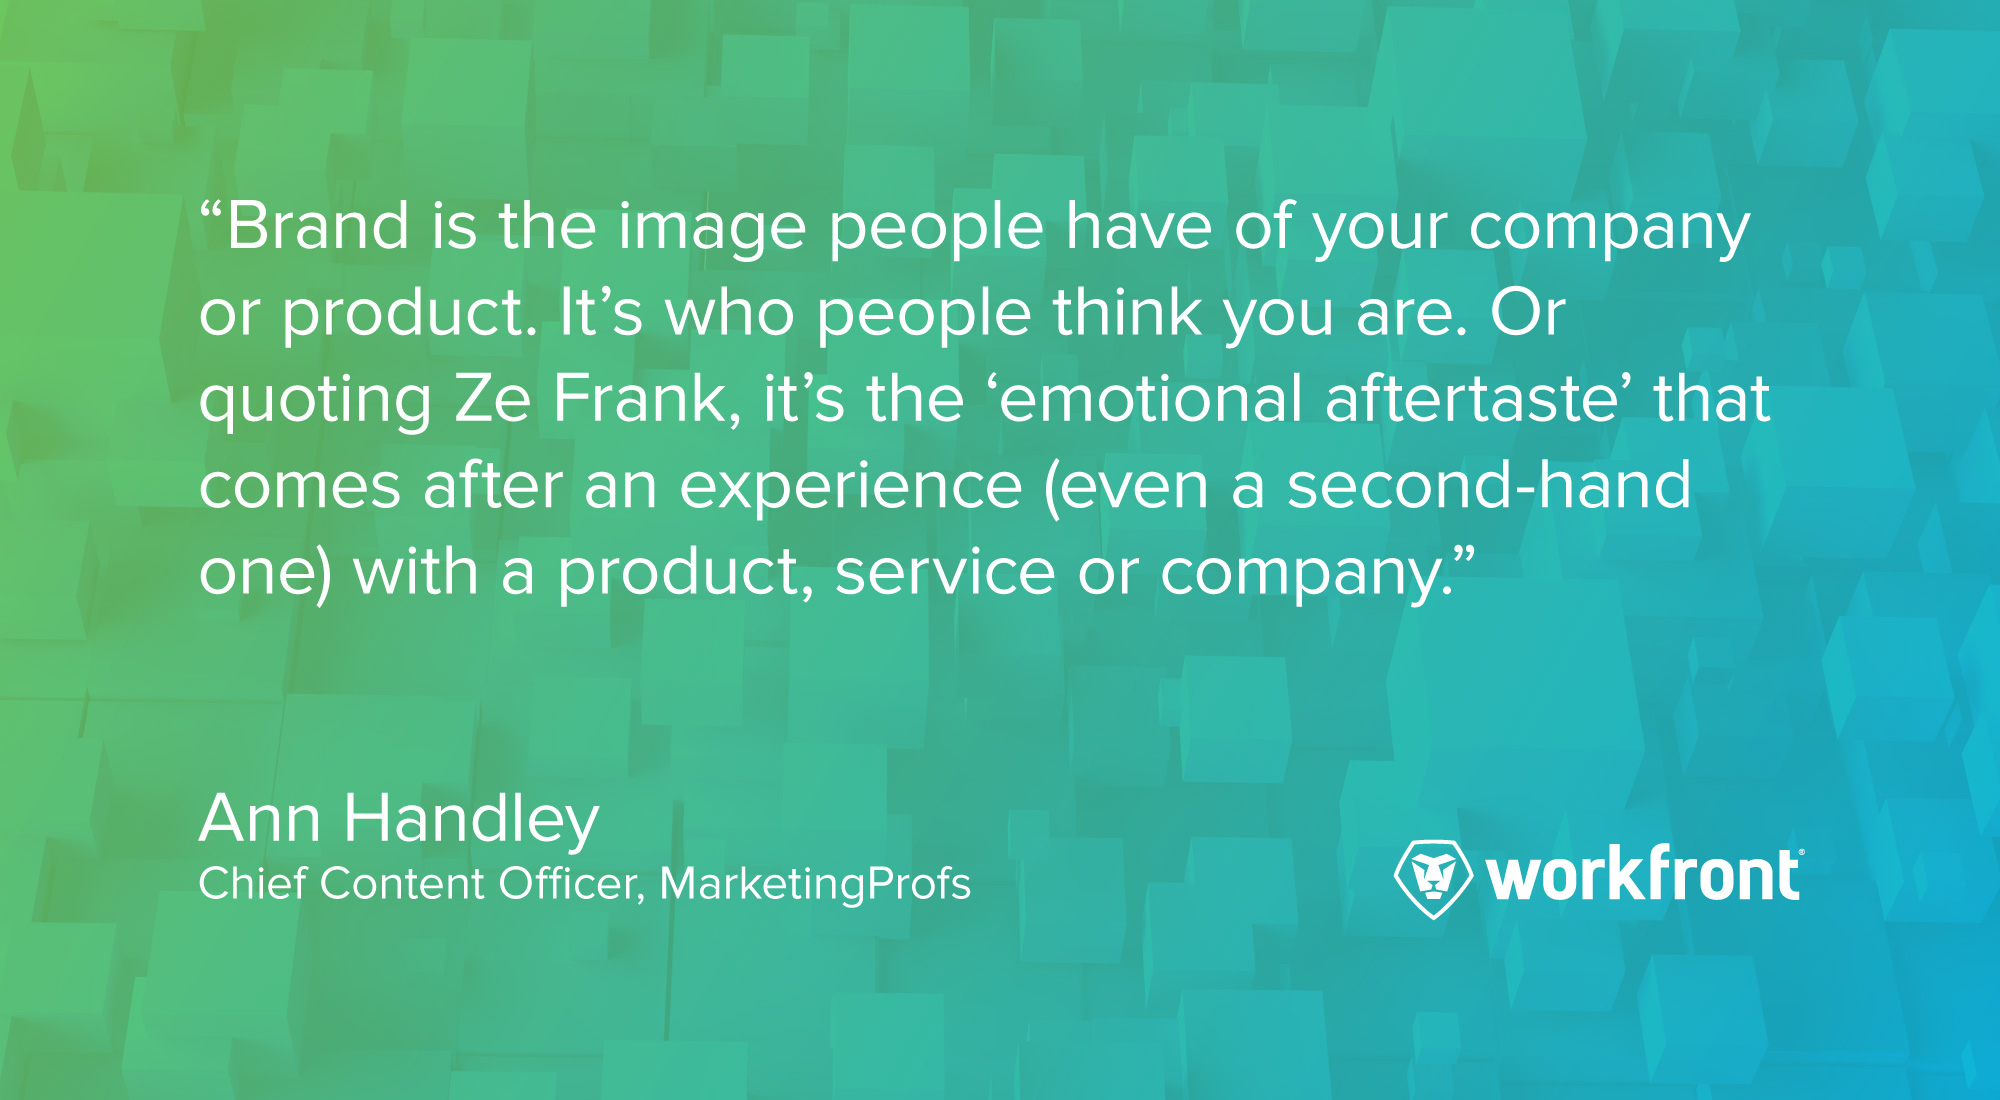 brand quote ann handley